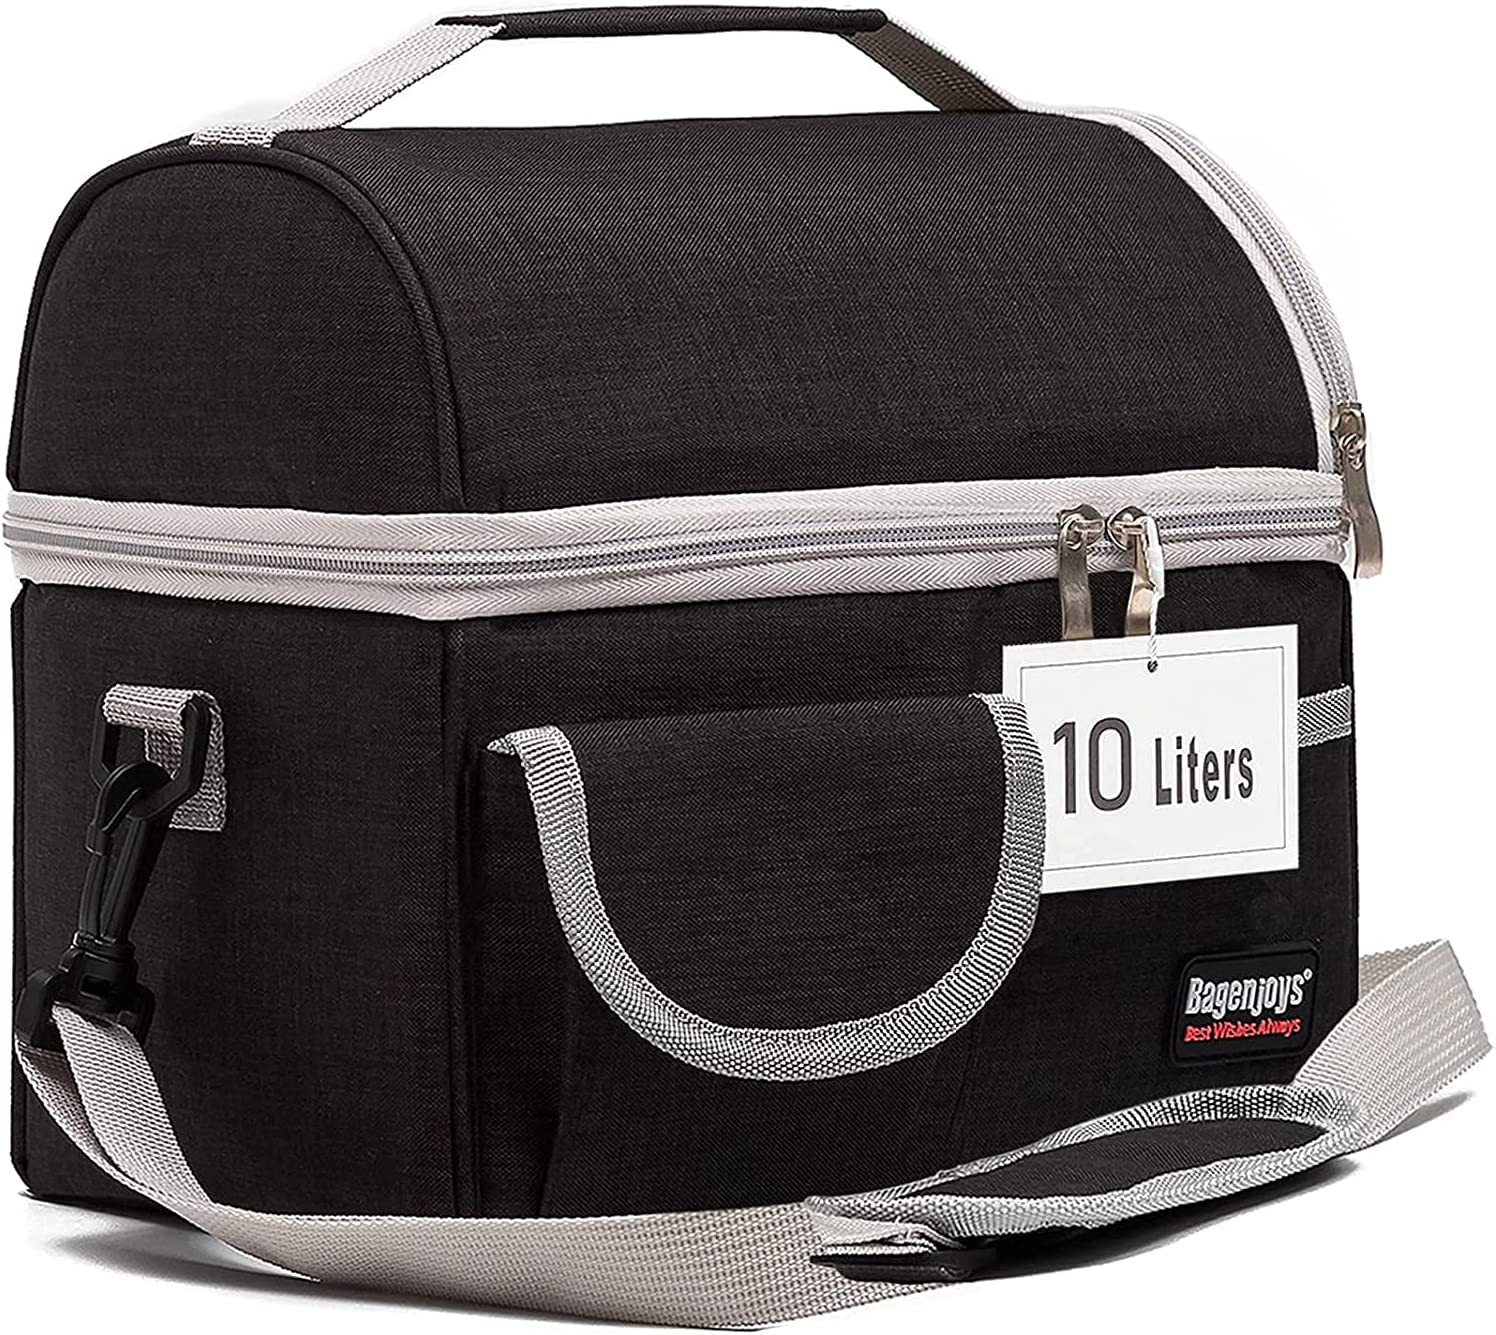 Lunch Bag Insulated Dual Spasm price Compartments Regular discount Men and Wome for Box